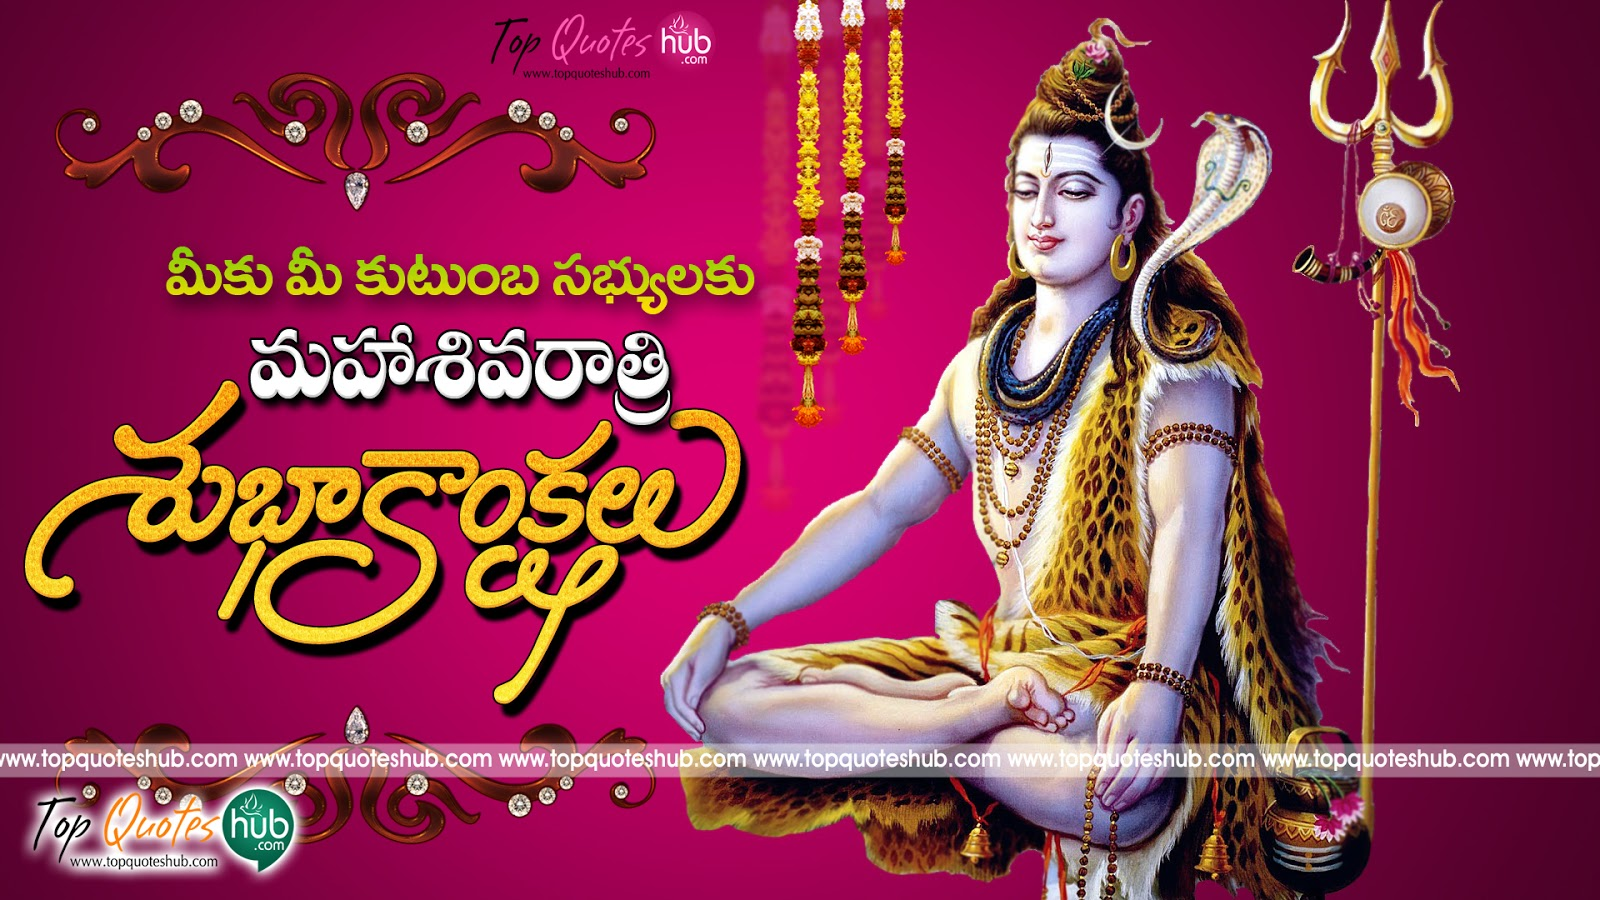 Maha shivaratri best telugu wishes quotes and sayings topquoteshub telugu mahashivaratri greetings quotes hd images topquoteshub m4hsunfo